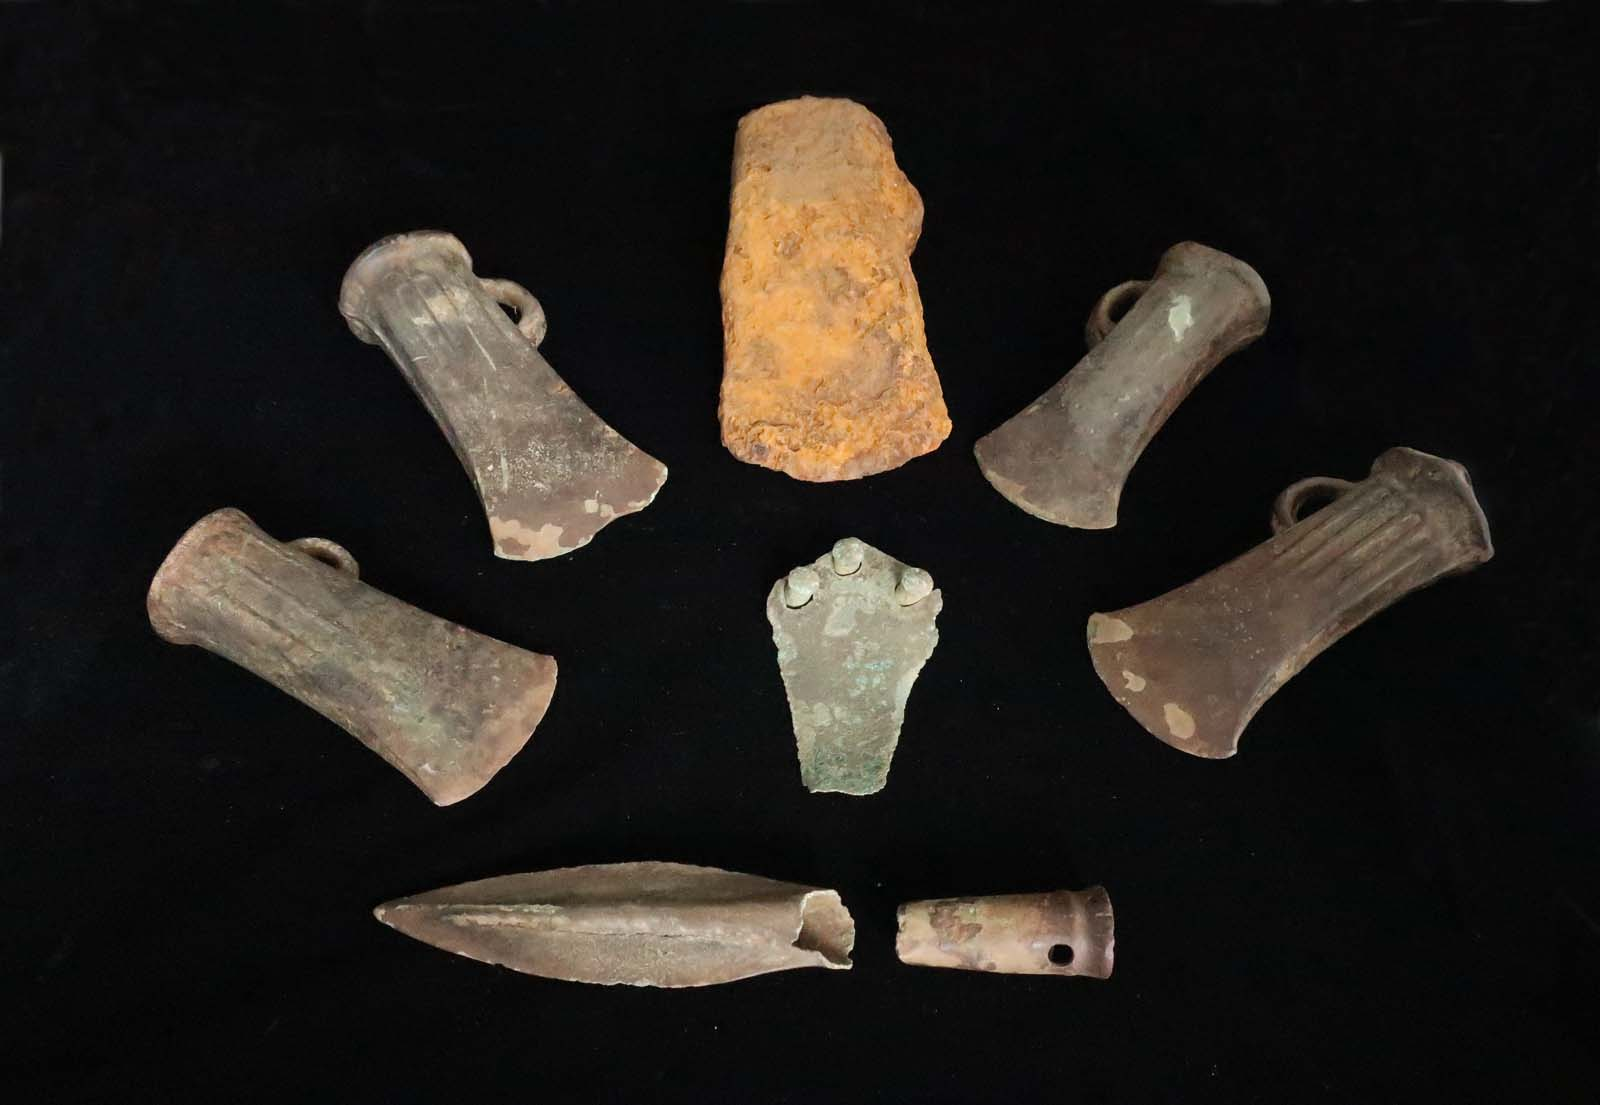 photo of various socketed axe heads and a spear head